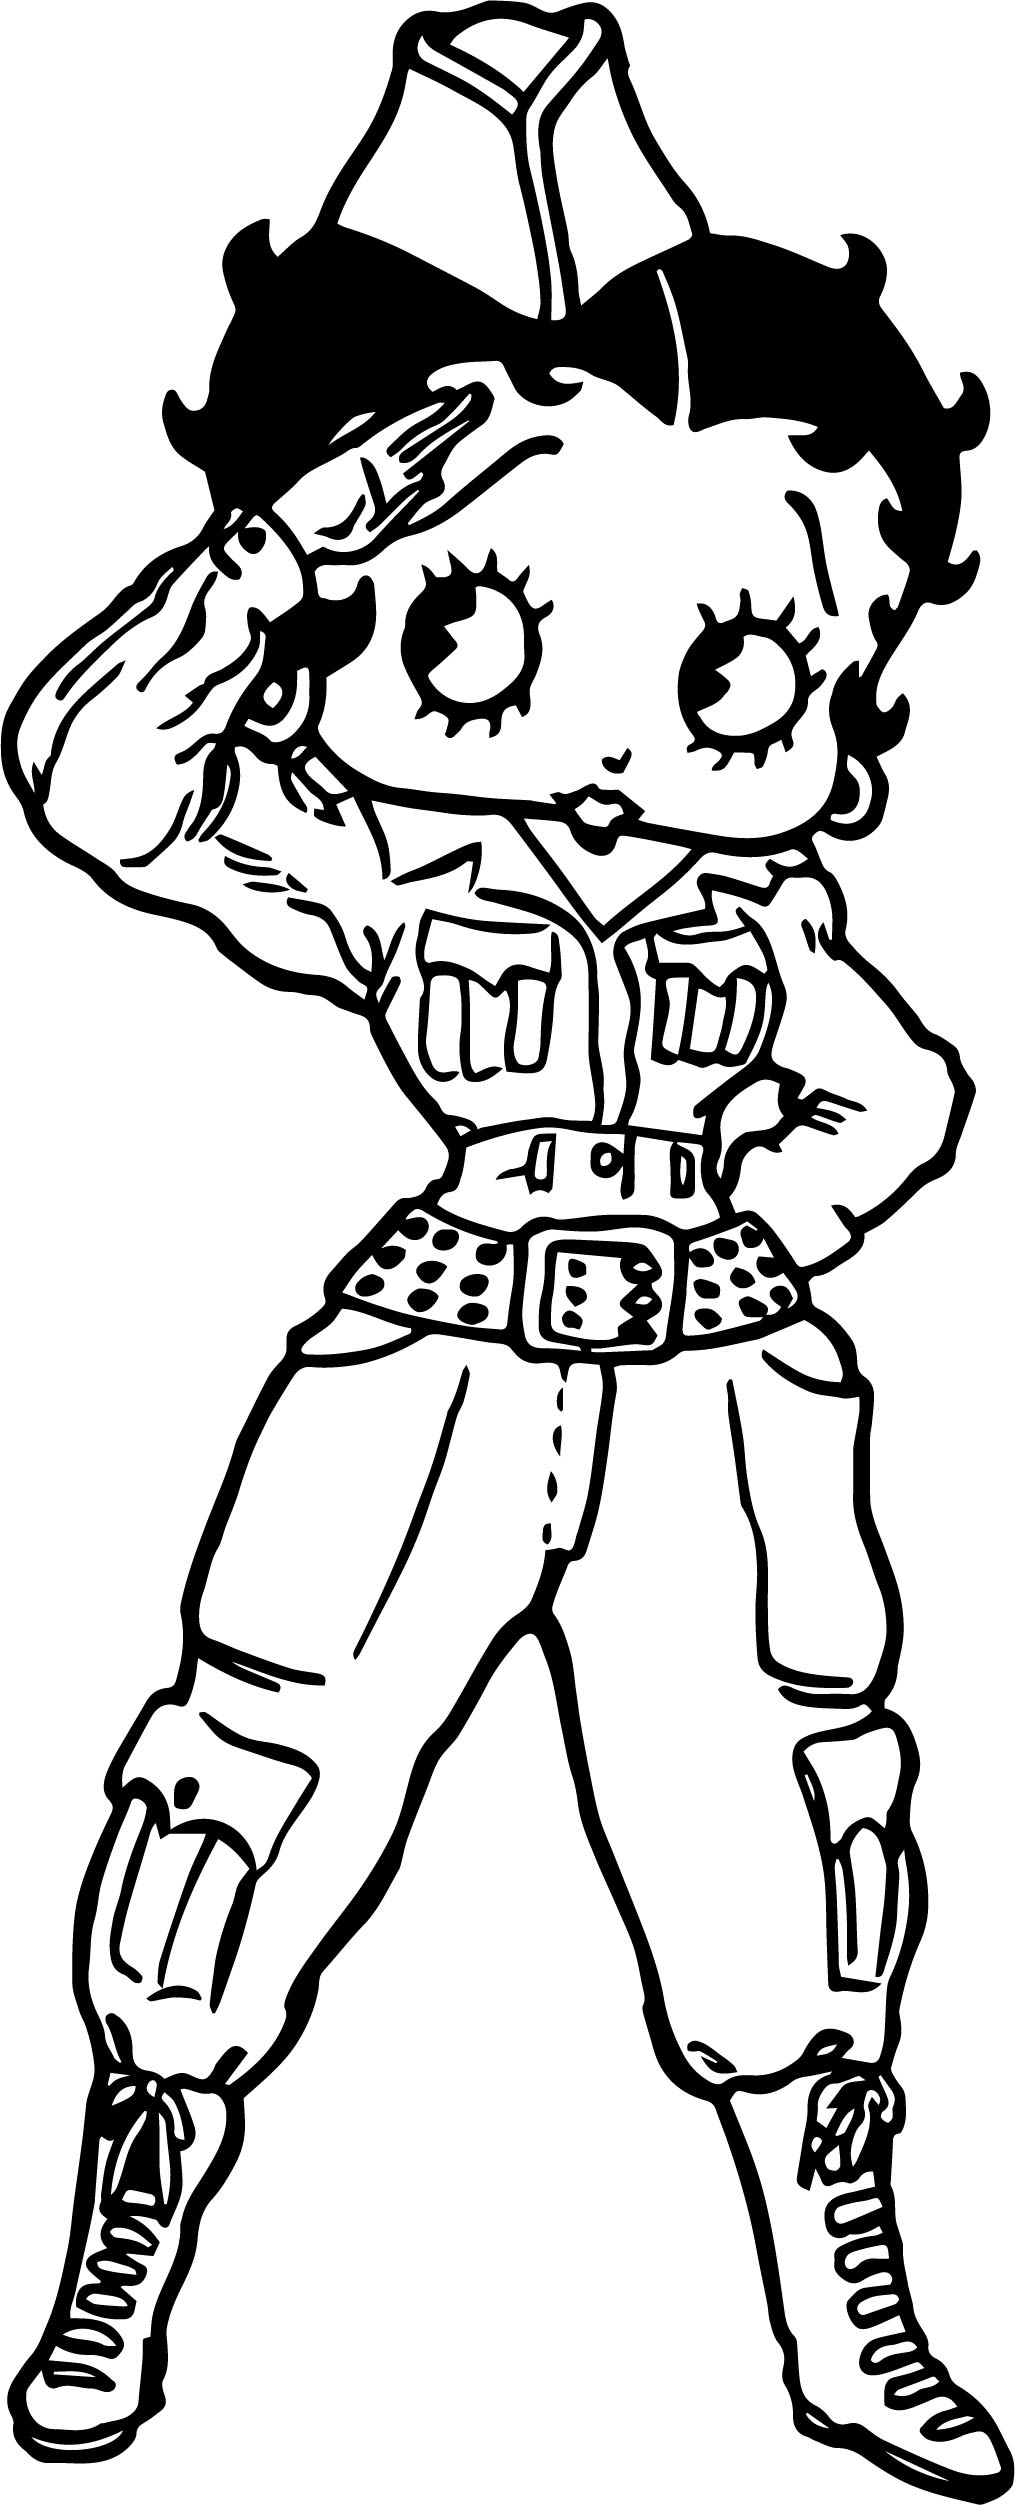 Betty Boop Soldier Coloring Page | Wecoloringpage